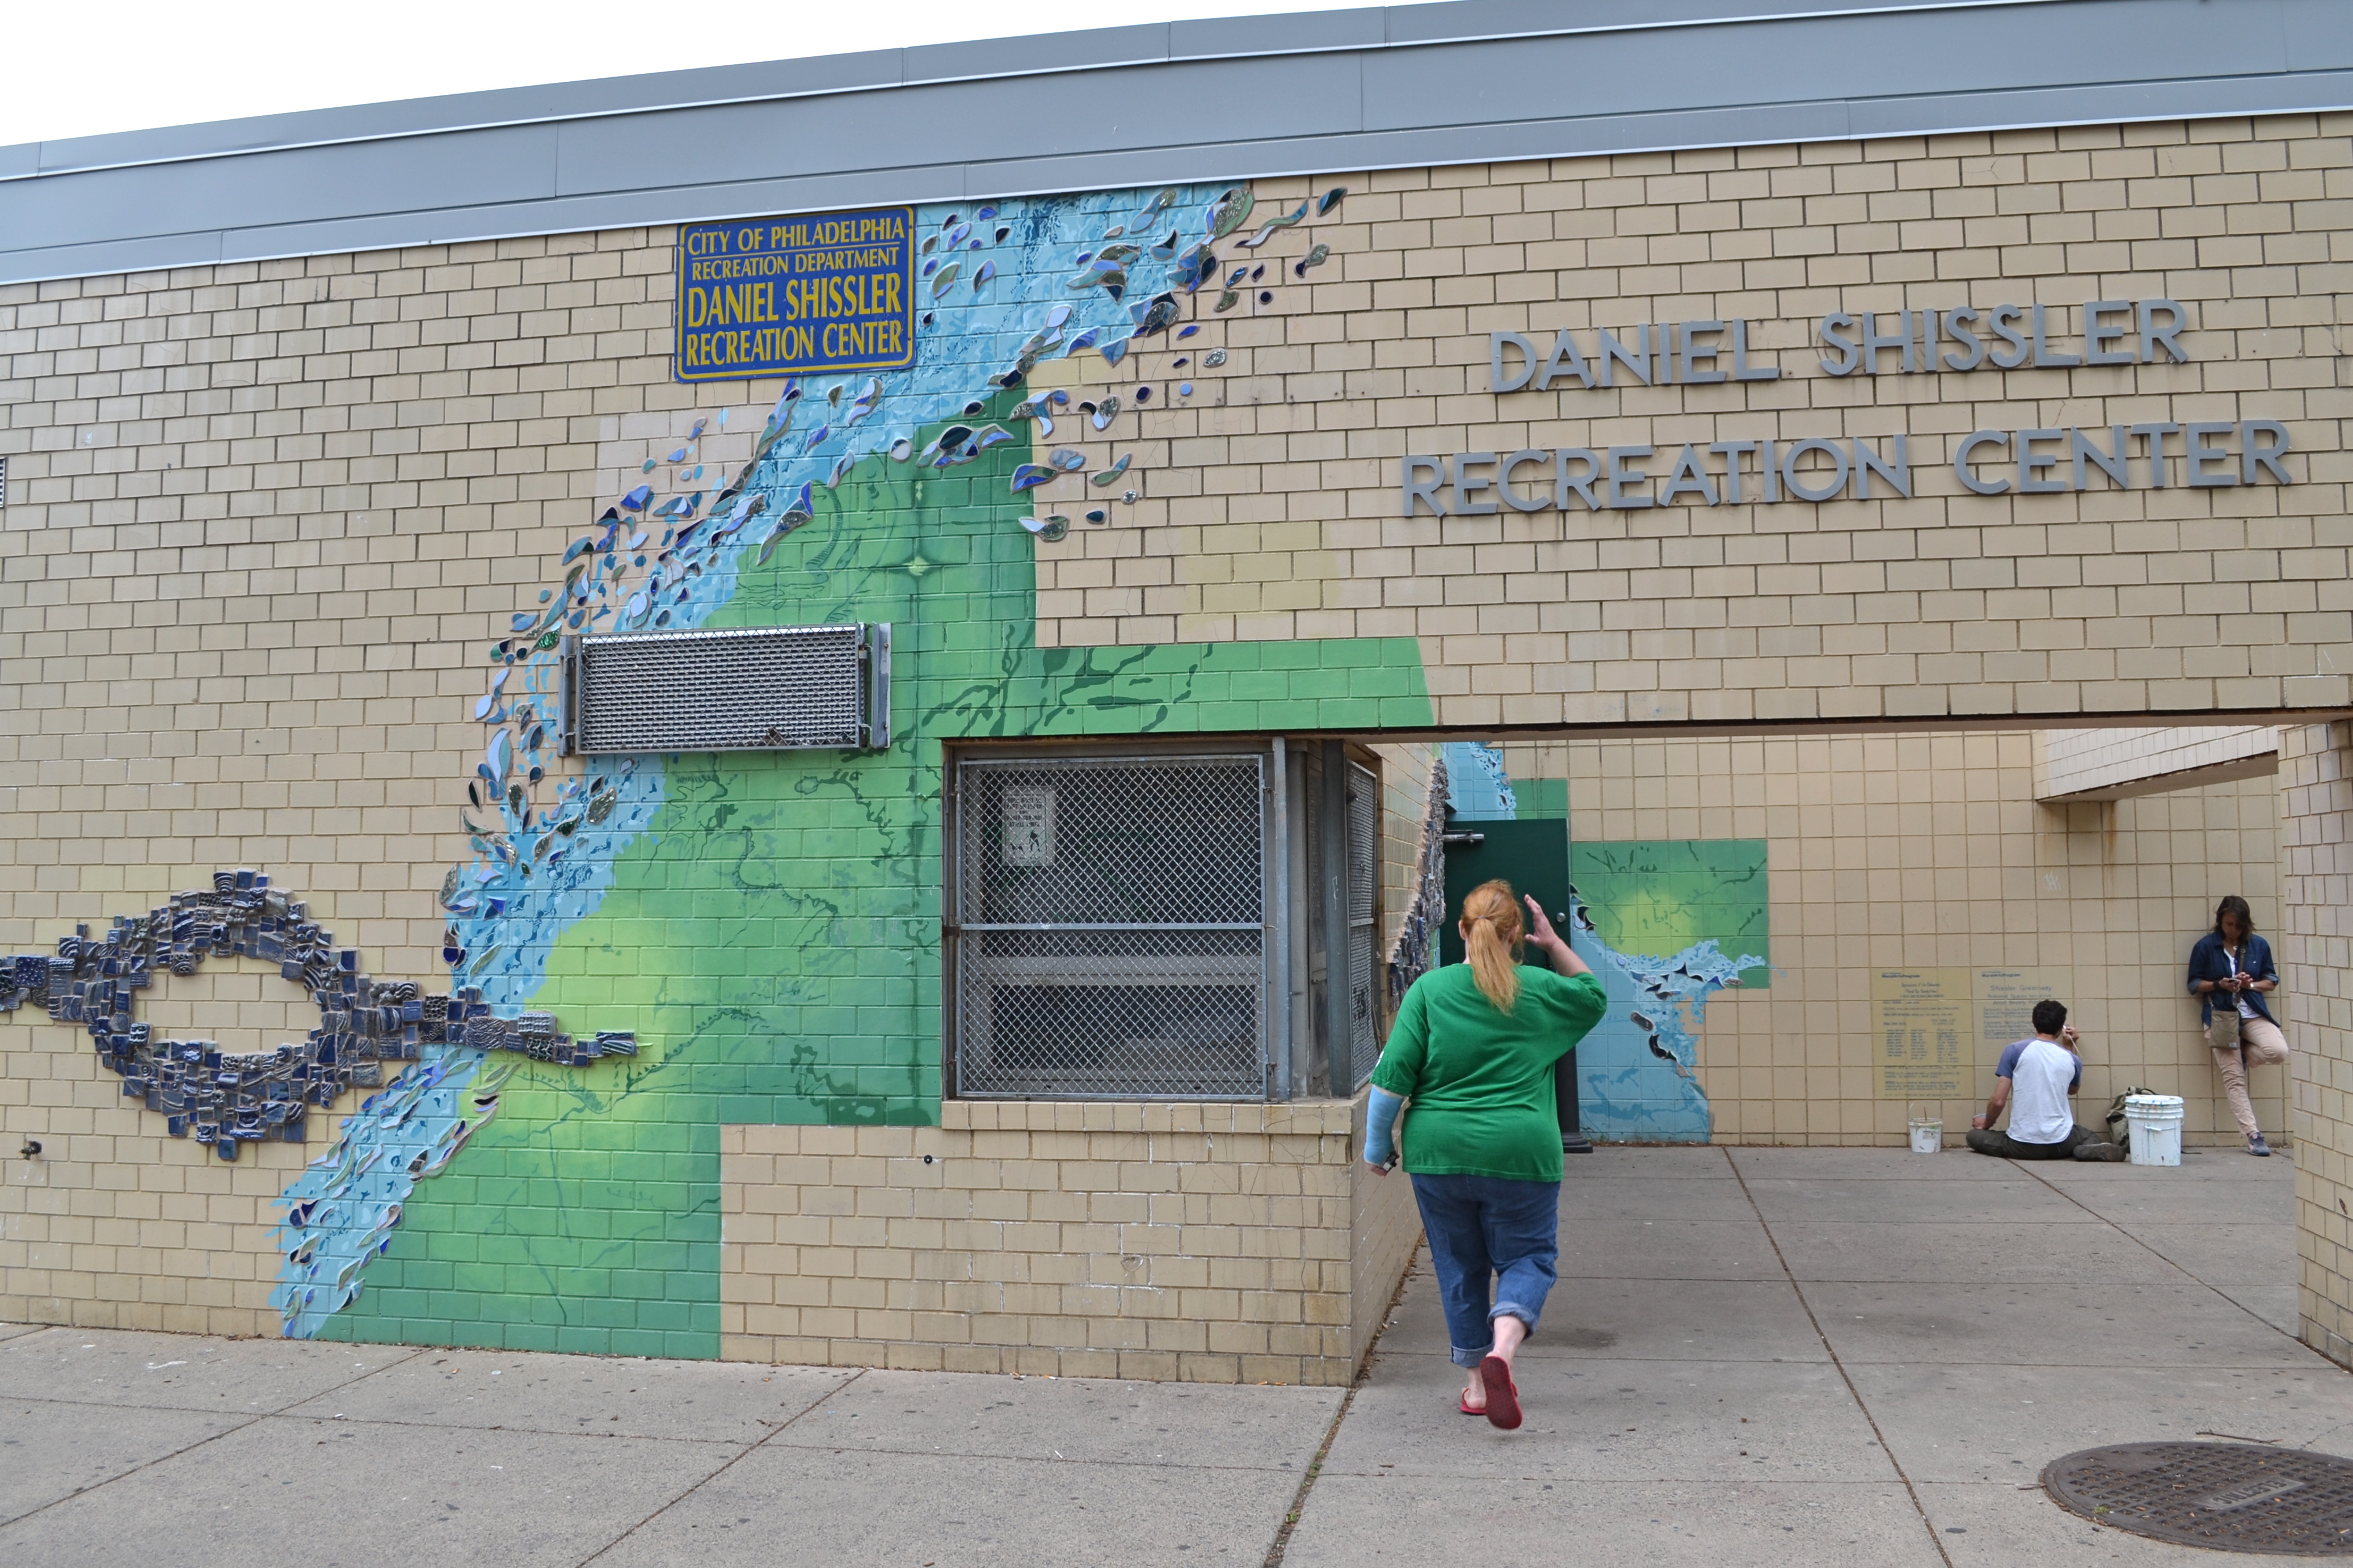 The sprayground is part of a Mural Arts Program initiative to enhance Shissler Rec Center